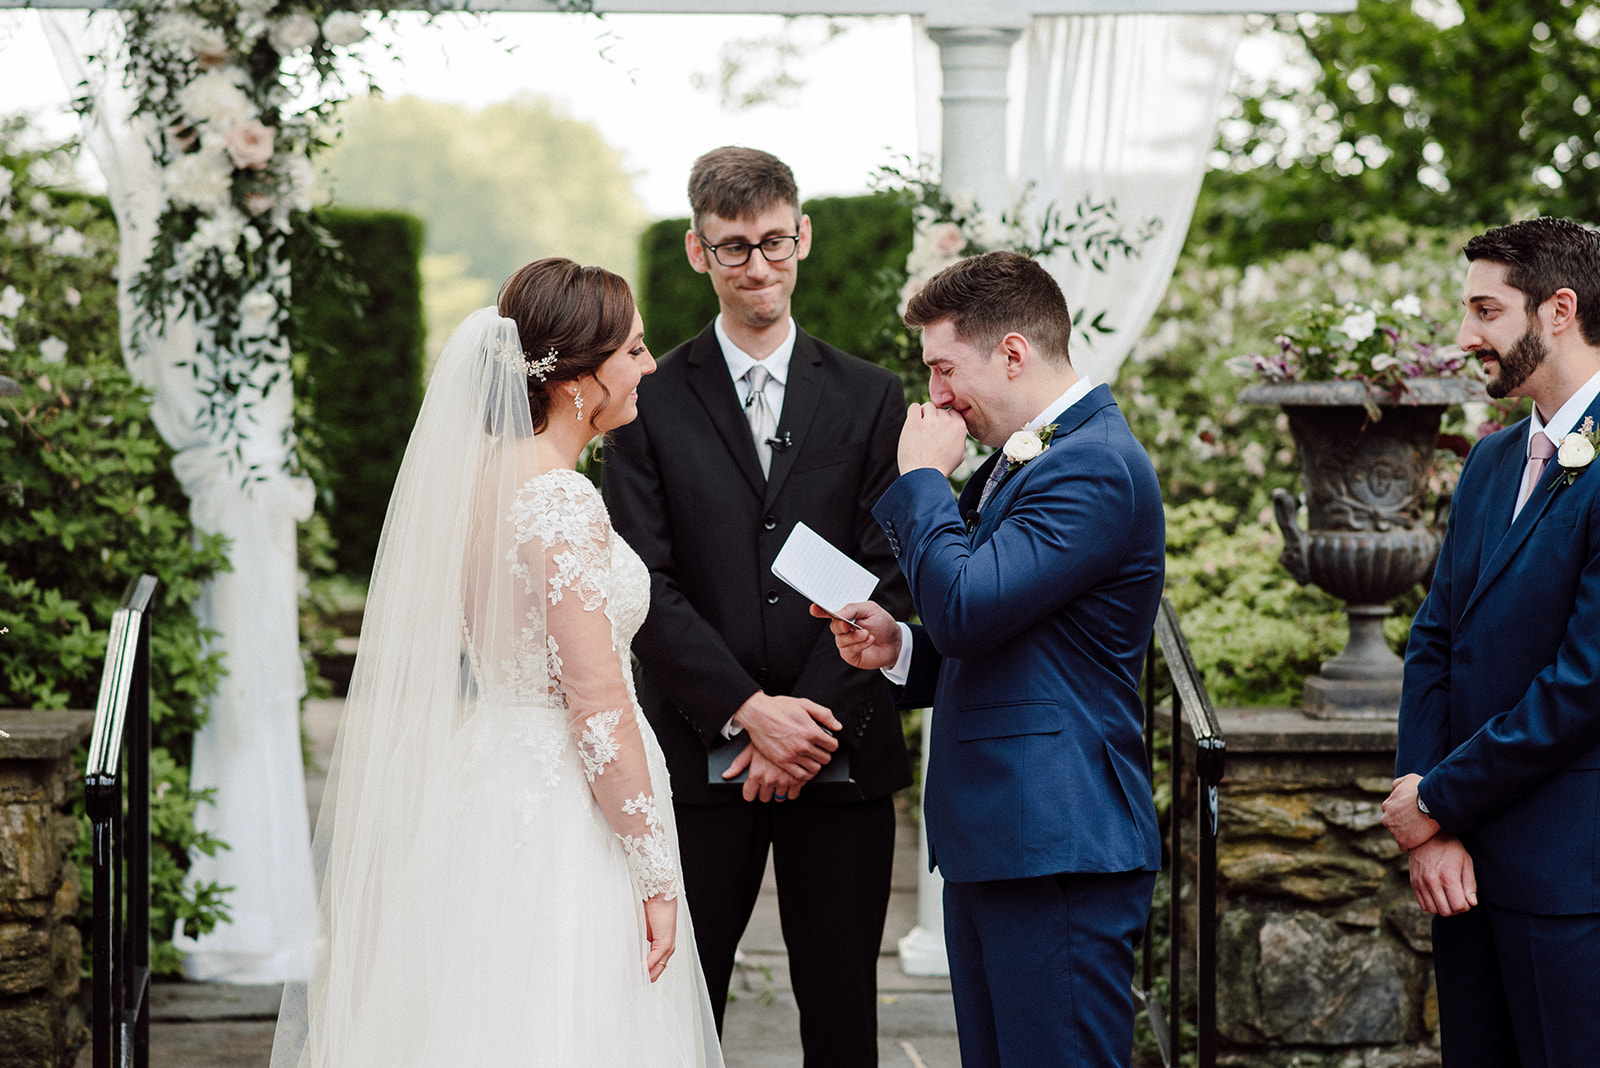 Andrew reads his vows through tears during his outdoor wedding ceremony at Drumore Estate.